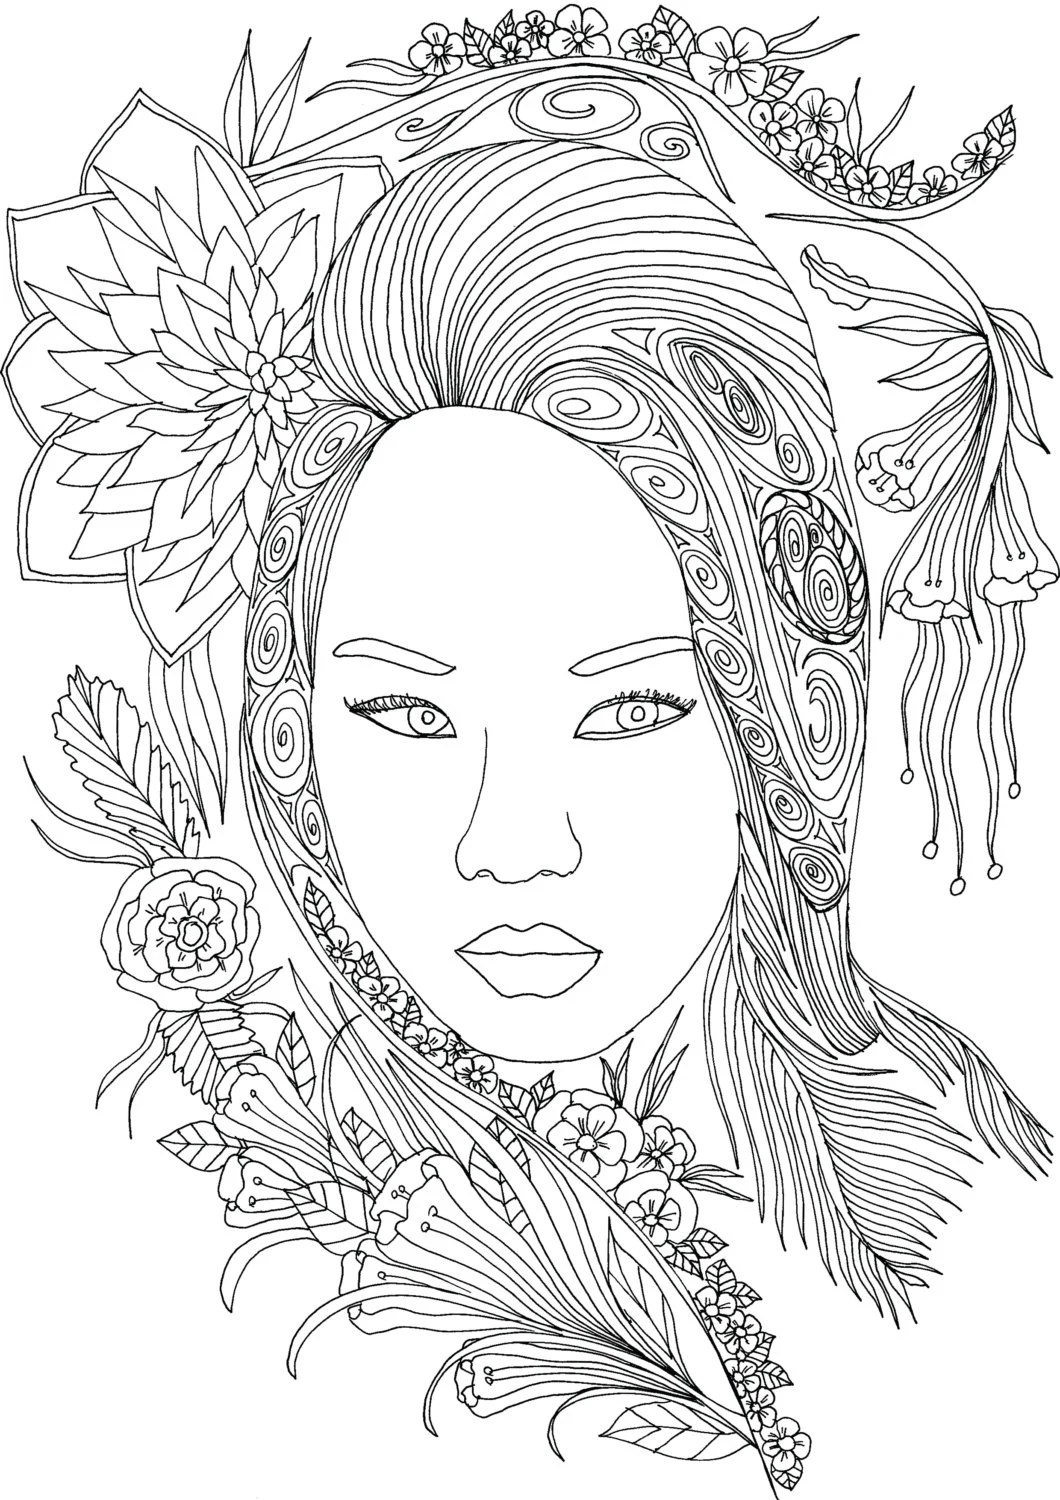 Adult Coloring Book Printable Coloring Pages by